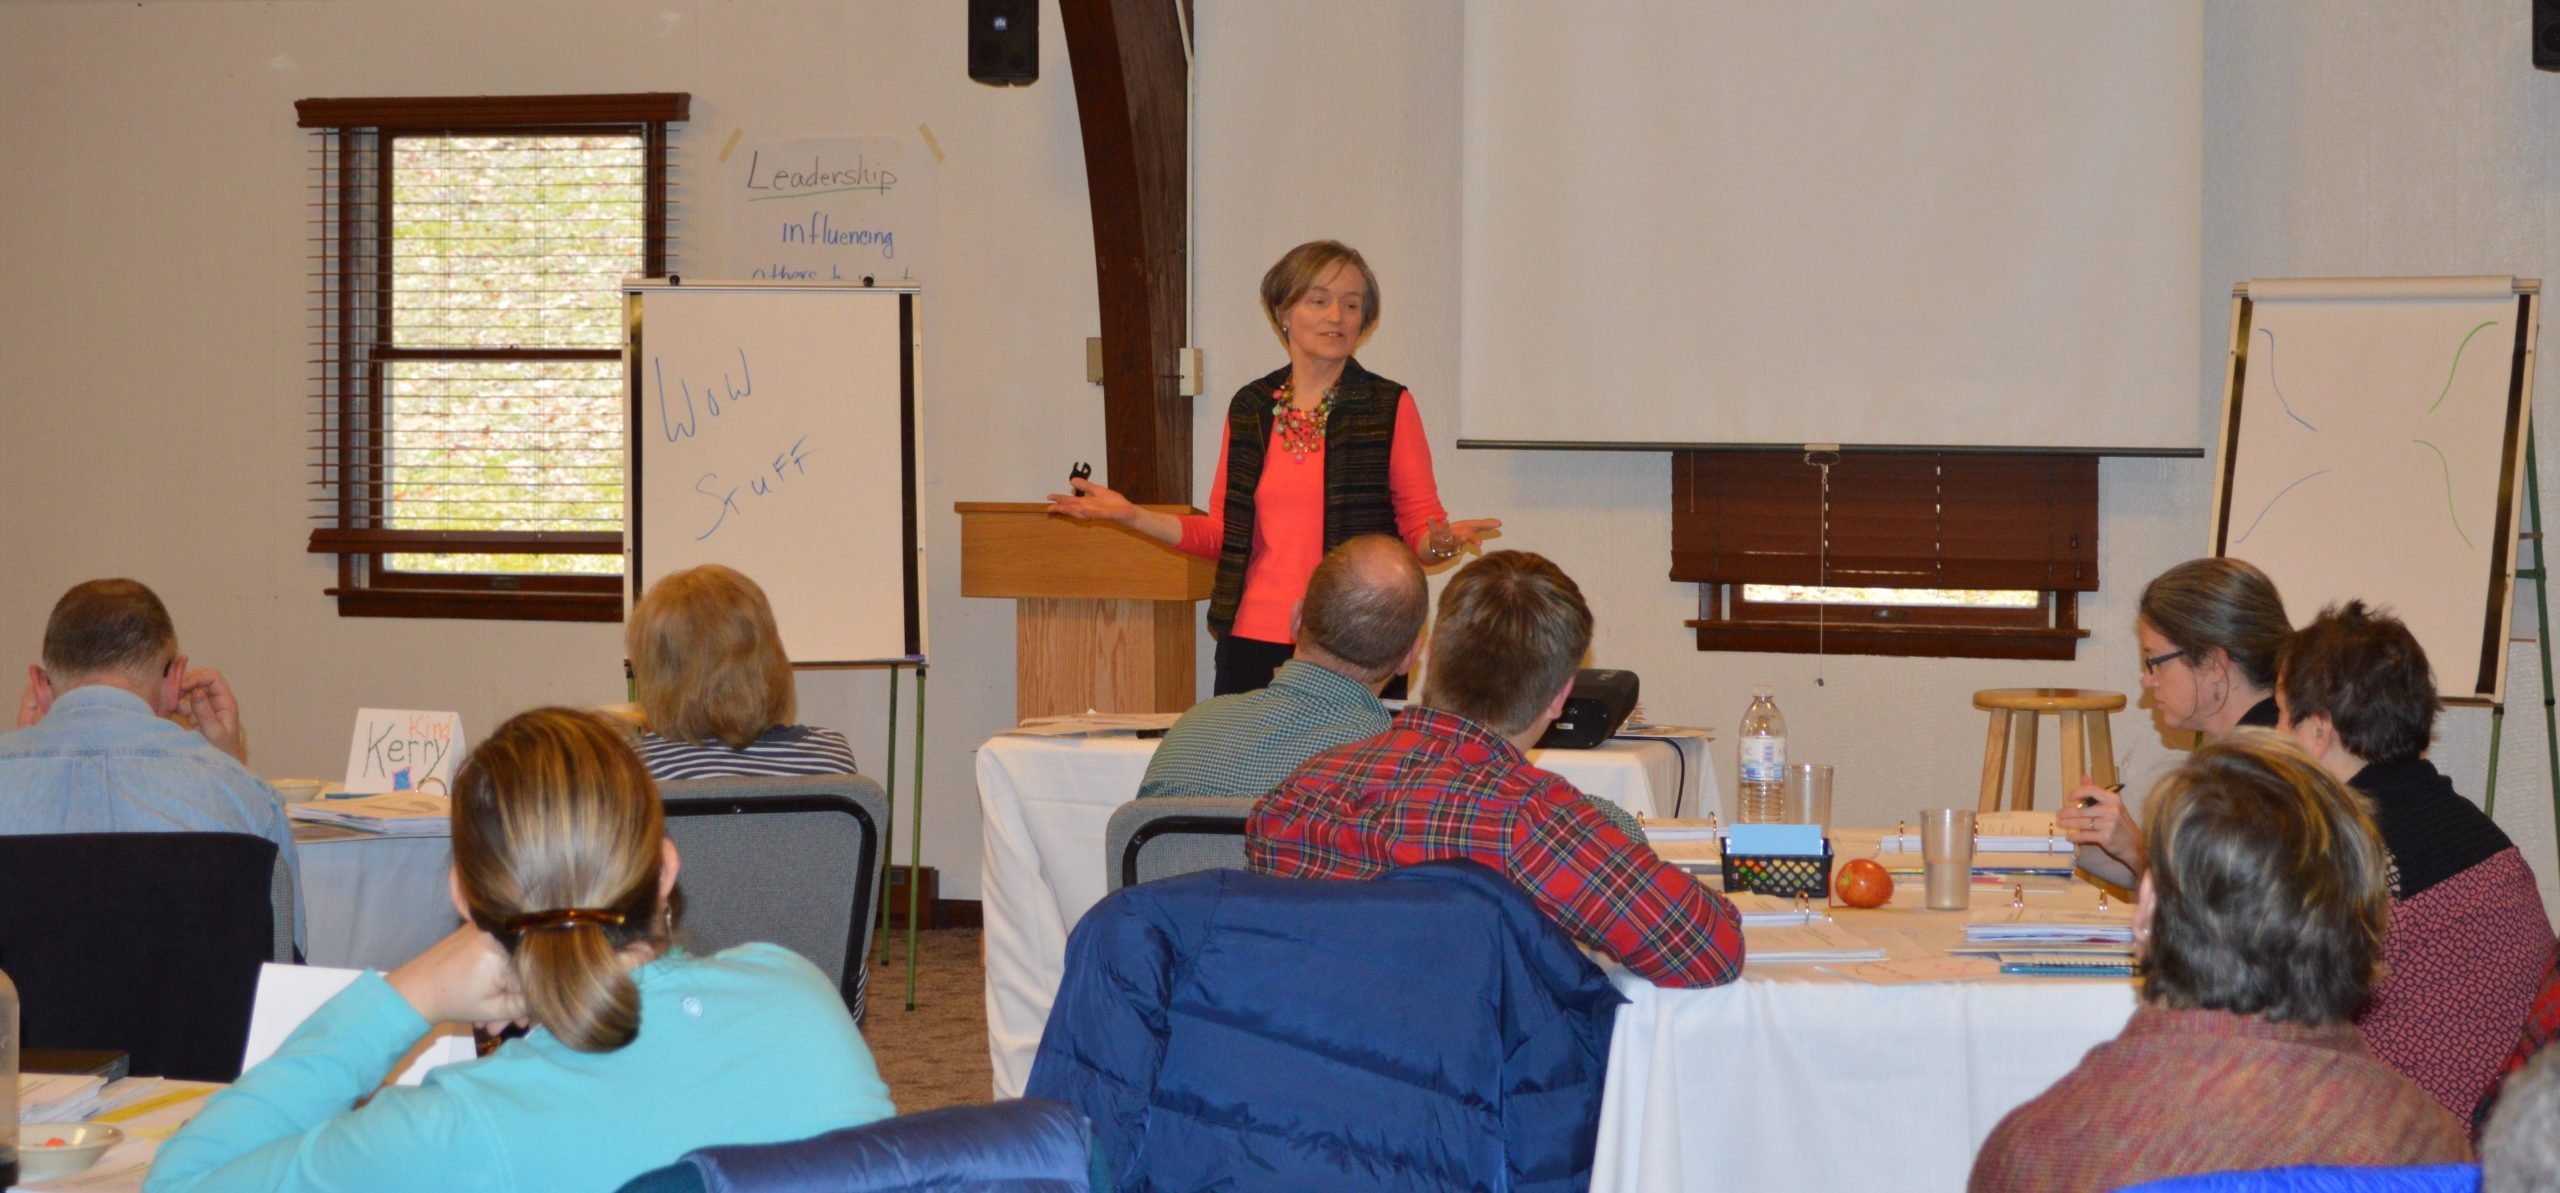 Lee Schmucker of Schmucker Training & Consulting, a member of the resource team for the Values-based Leadership Program, shares with VBLP participants at their February meeting. (Laurelville Mennonite Church Center photo)